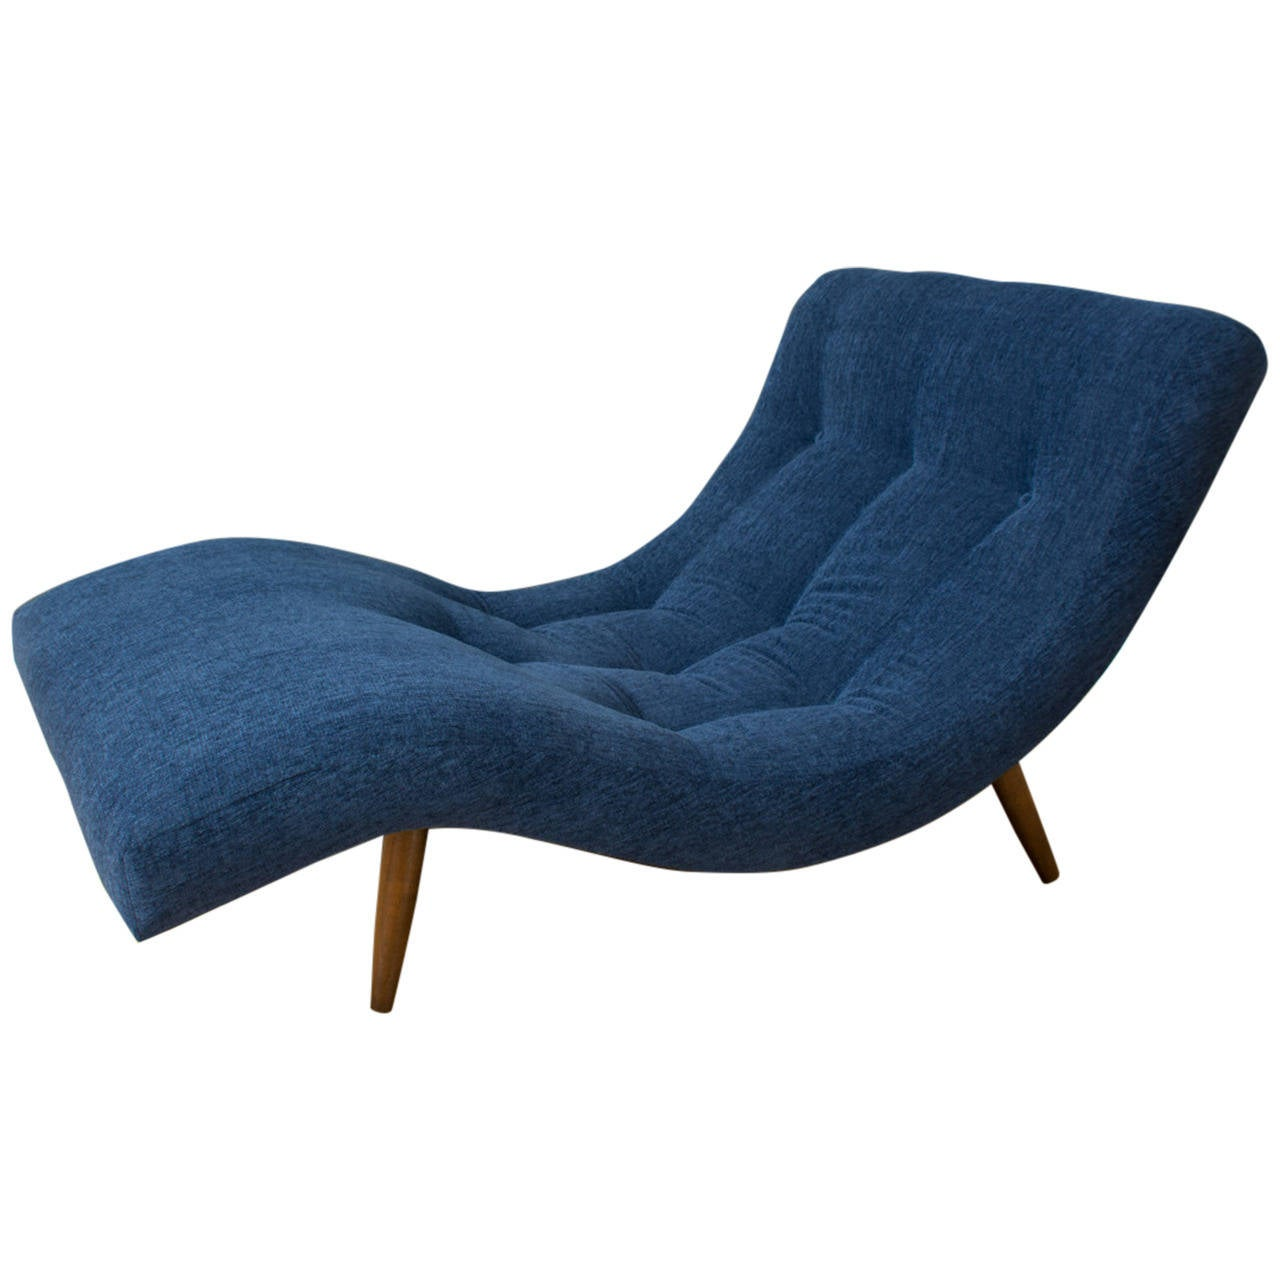 Vintage mid century chaise lounge chair by adrian pearsall for Chaise lounge bench